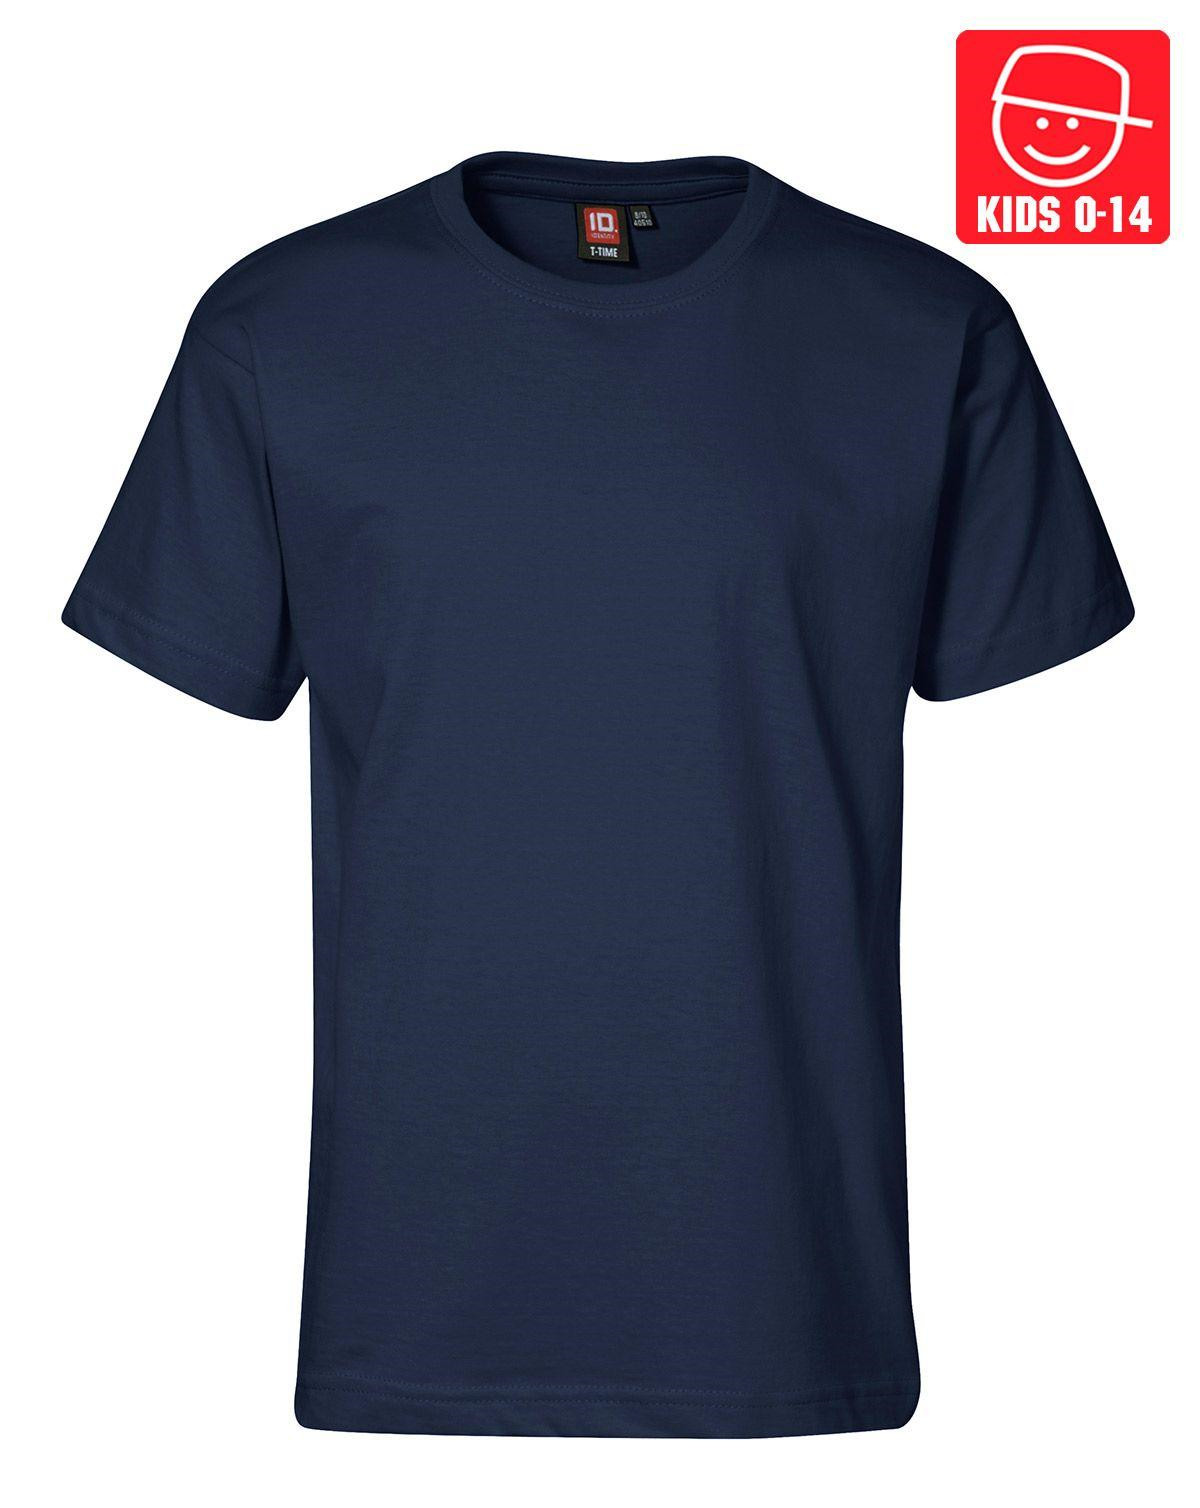 Image of   ID T-TIME T-shirt (Navy, 152)